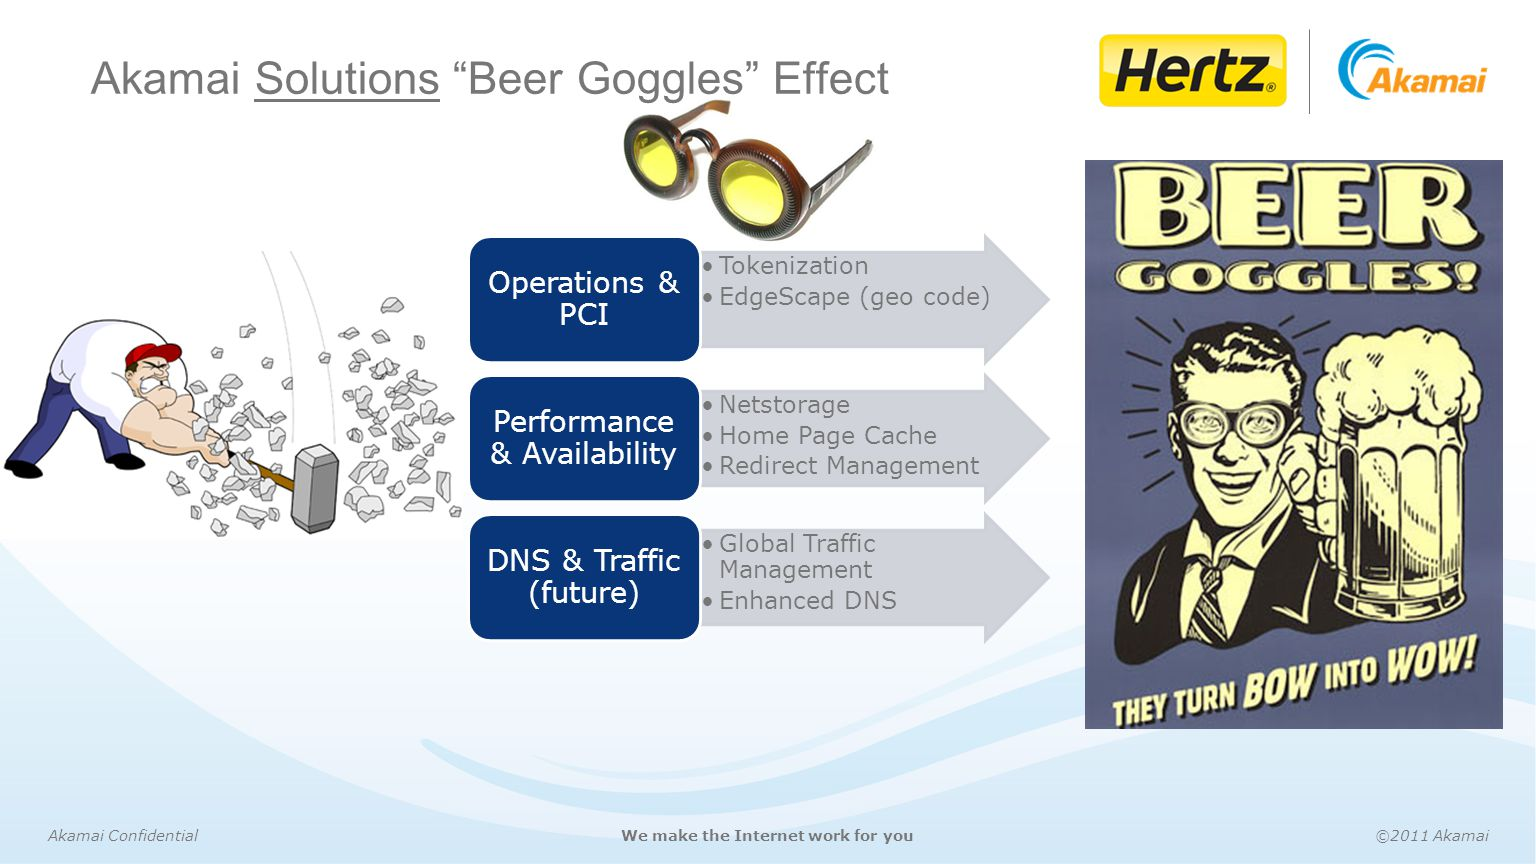 Akamai Solutions Beer Goggles Effect